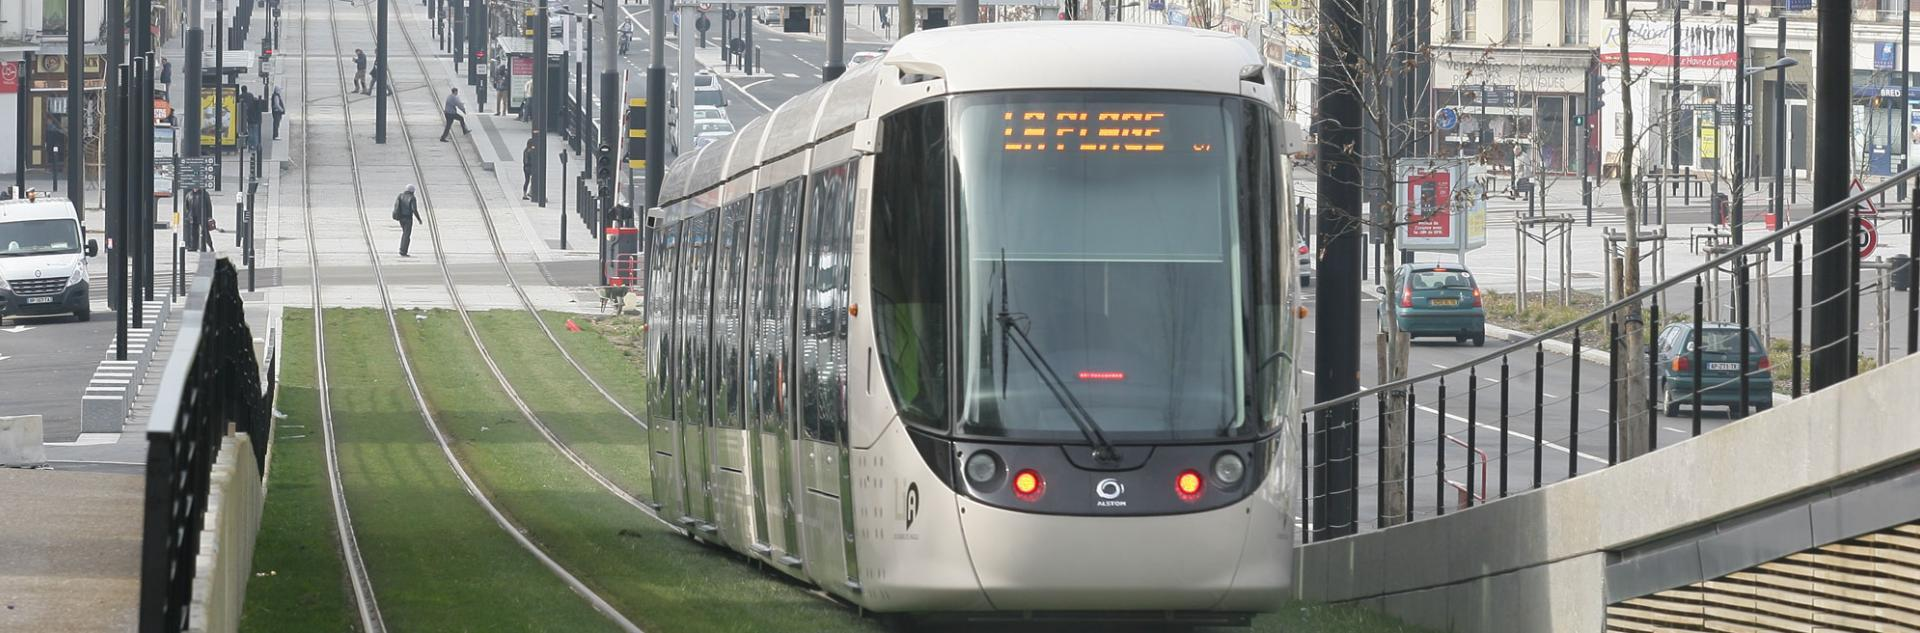 Tramway, Le Havre